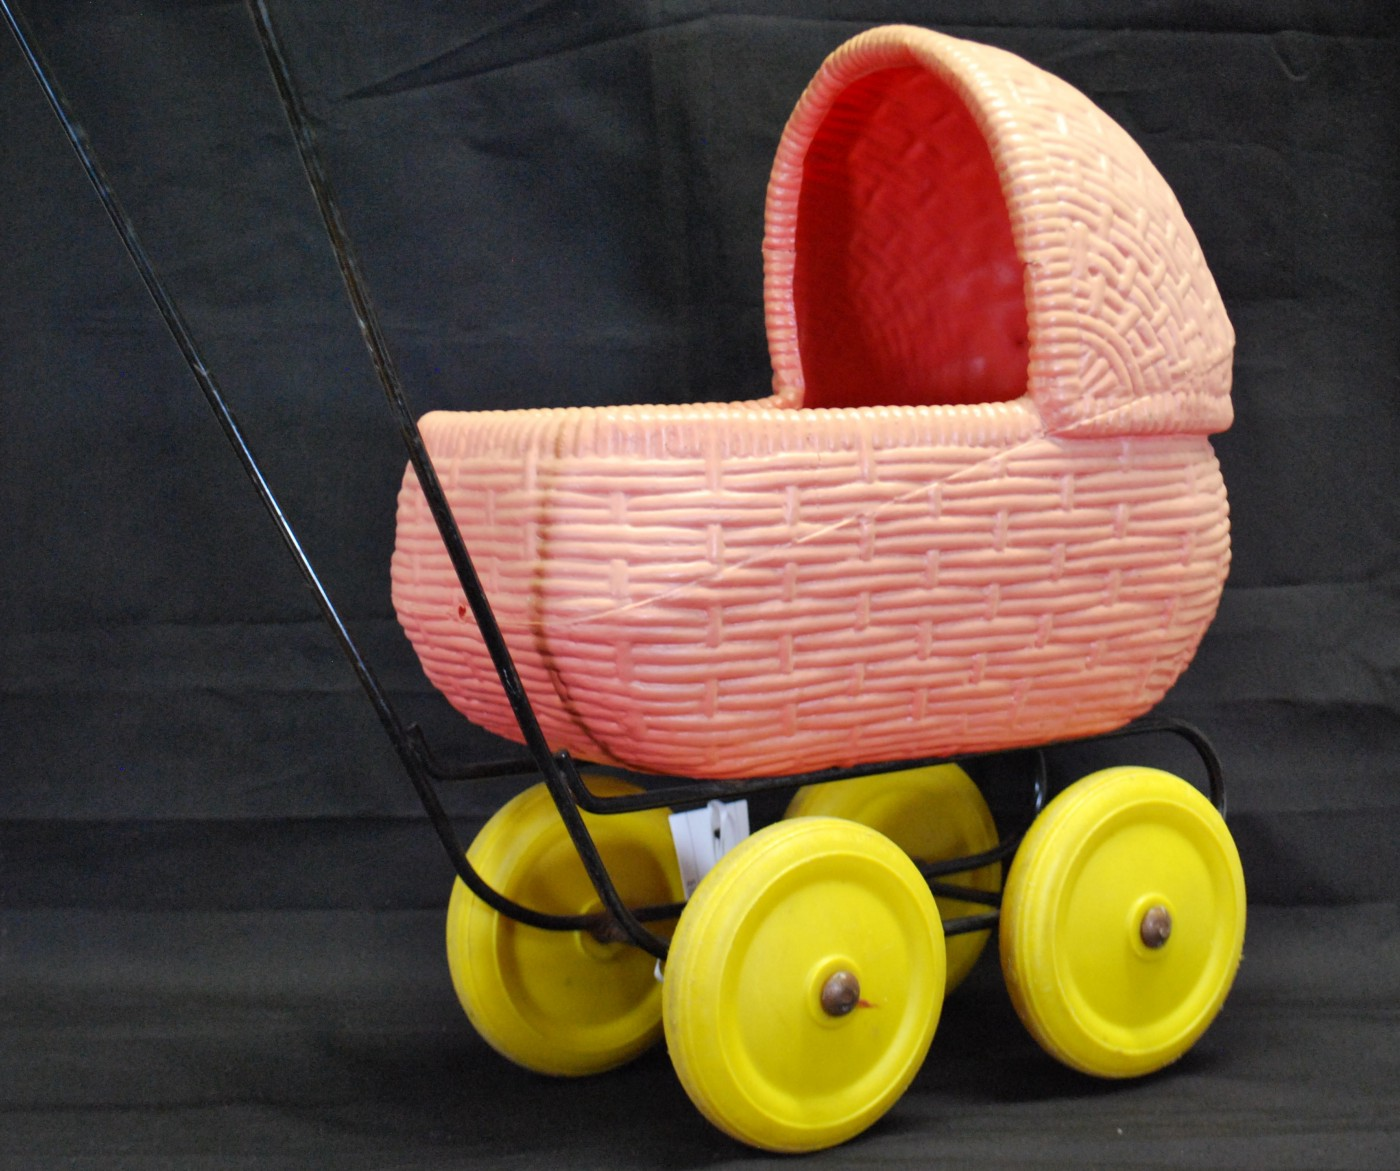 Image shows a pink plastic woven-look toy pram with yellow wheels. The pram is on a black frame with a handle to pushed by children.